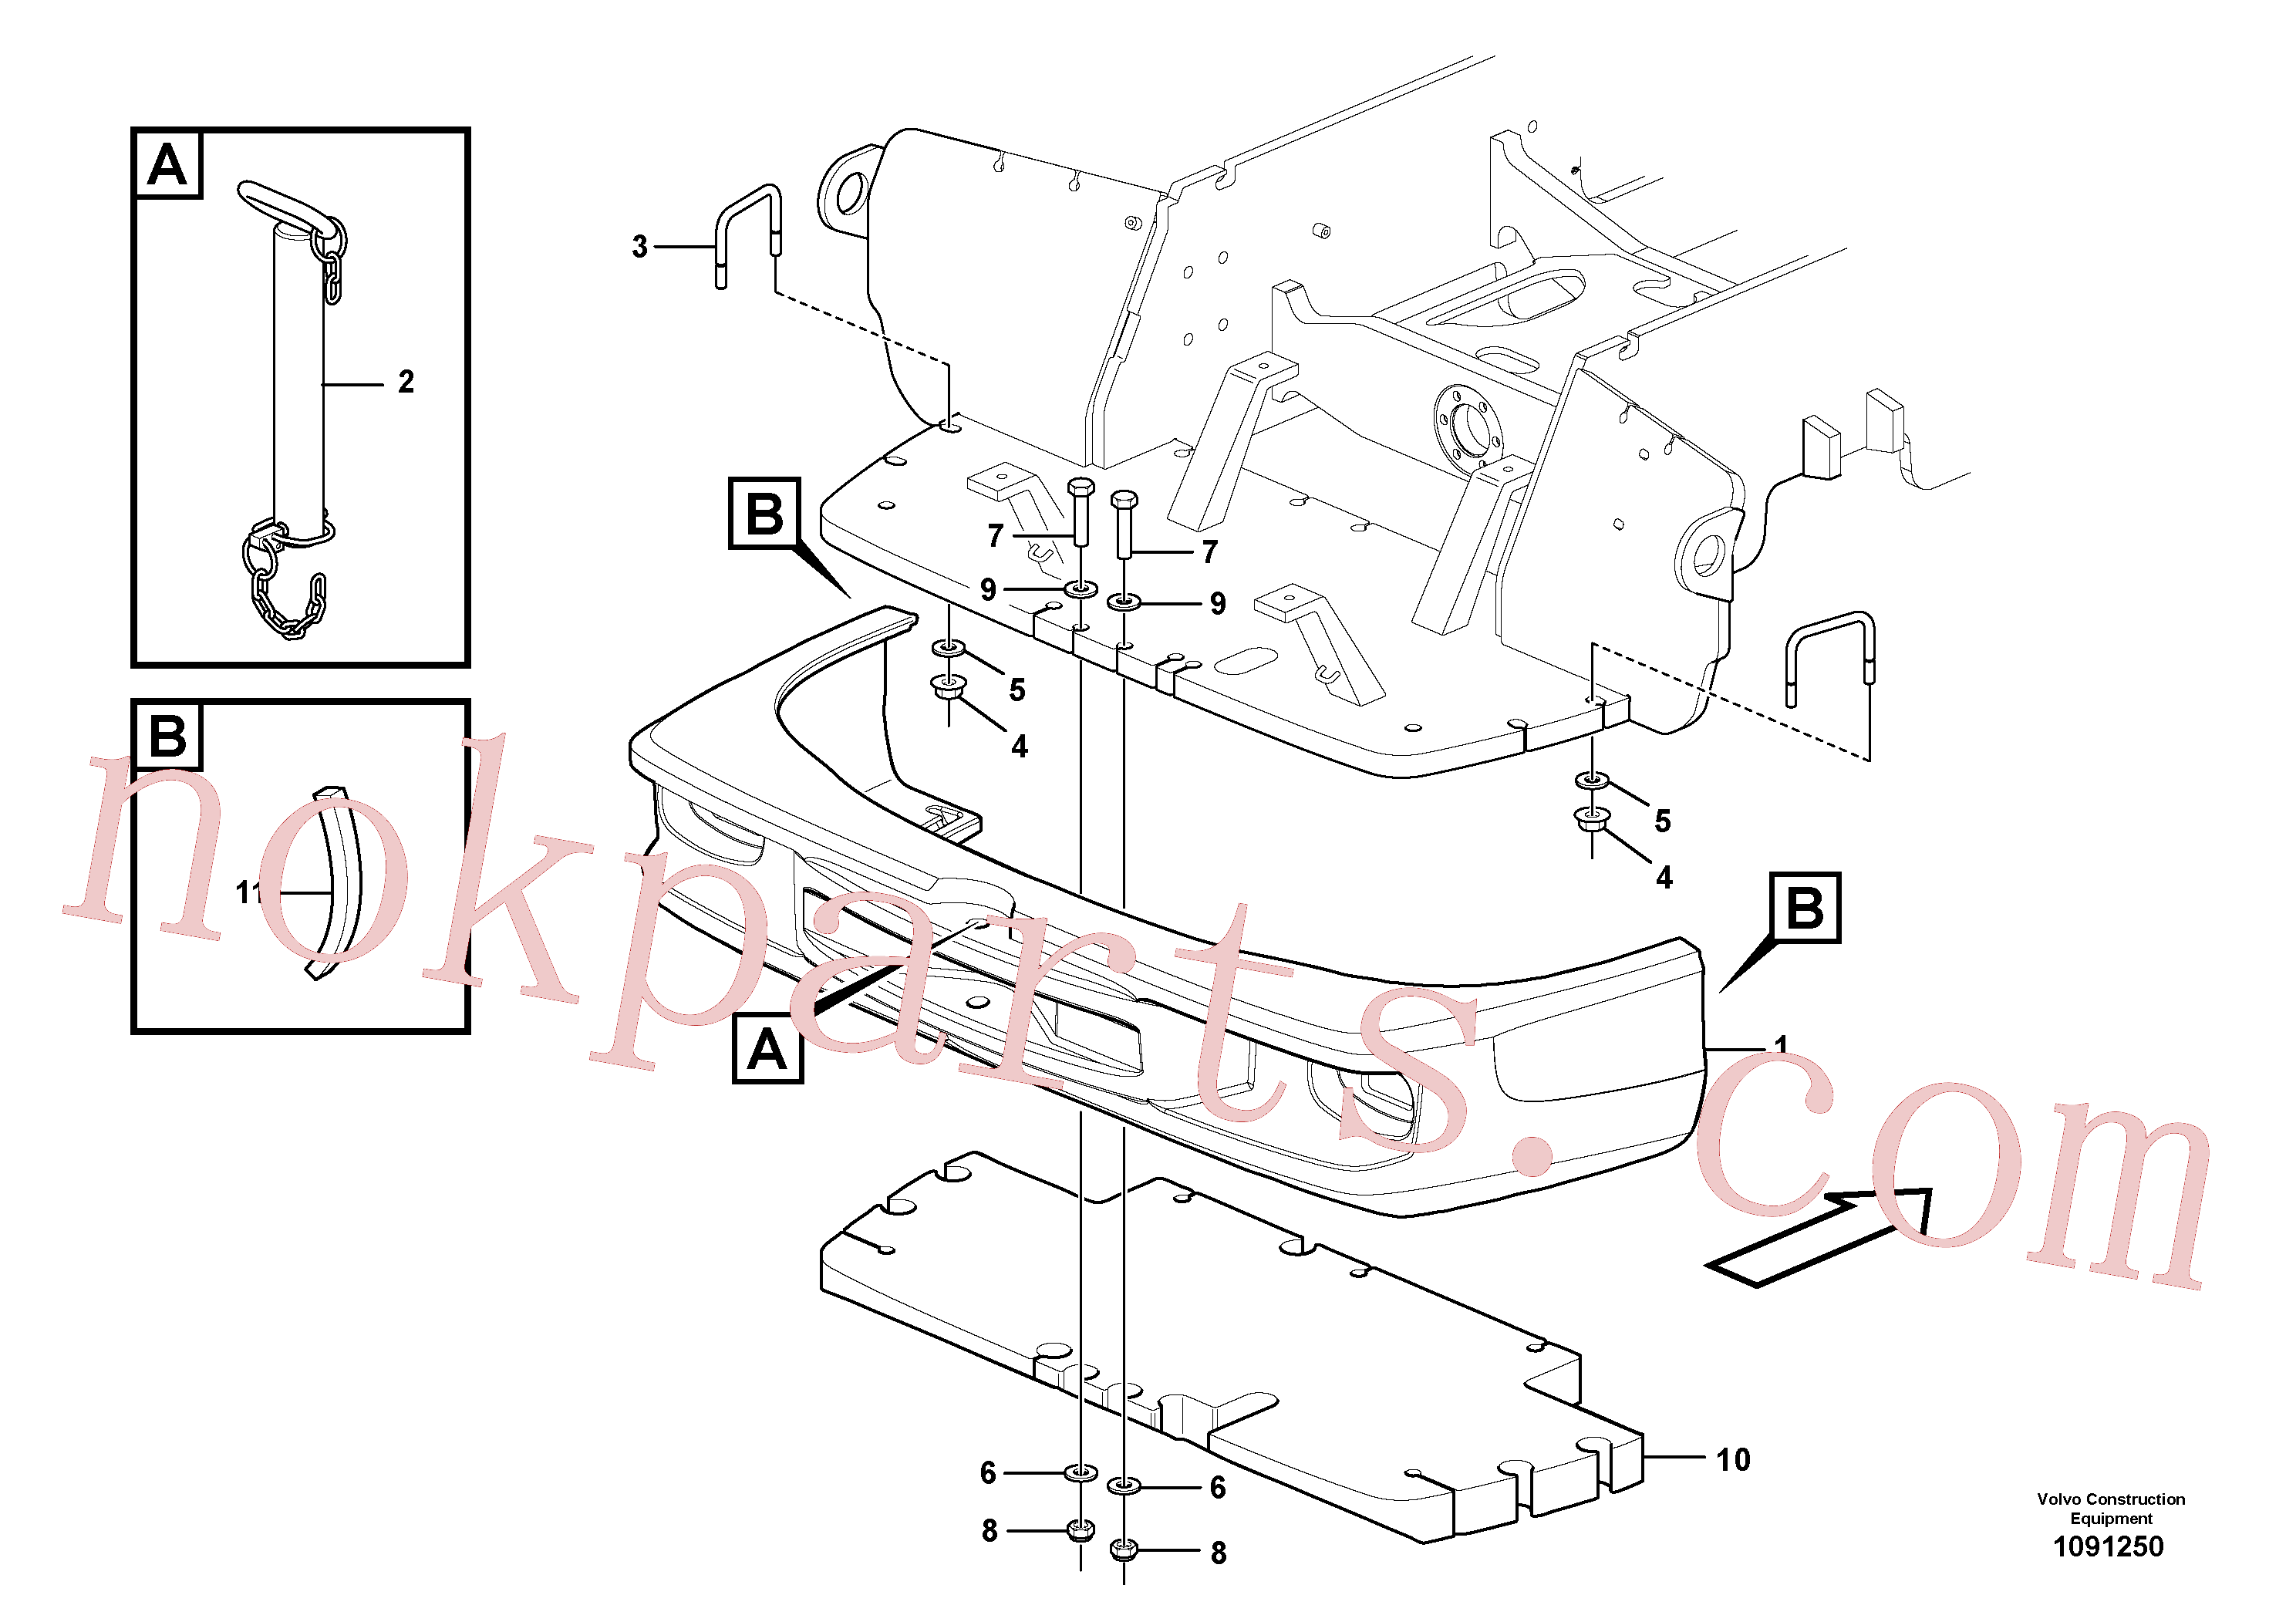 PJ4410041 for Volvo Counterweights(1091250 assembly)